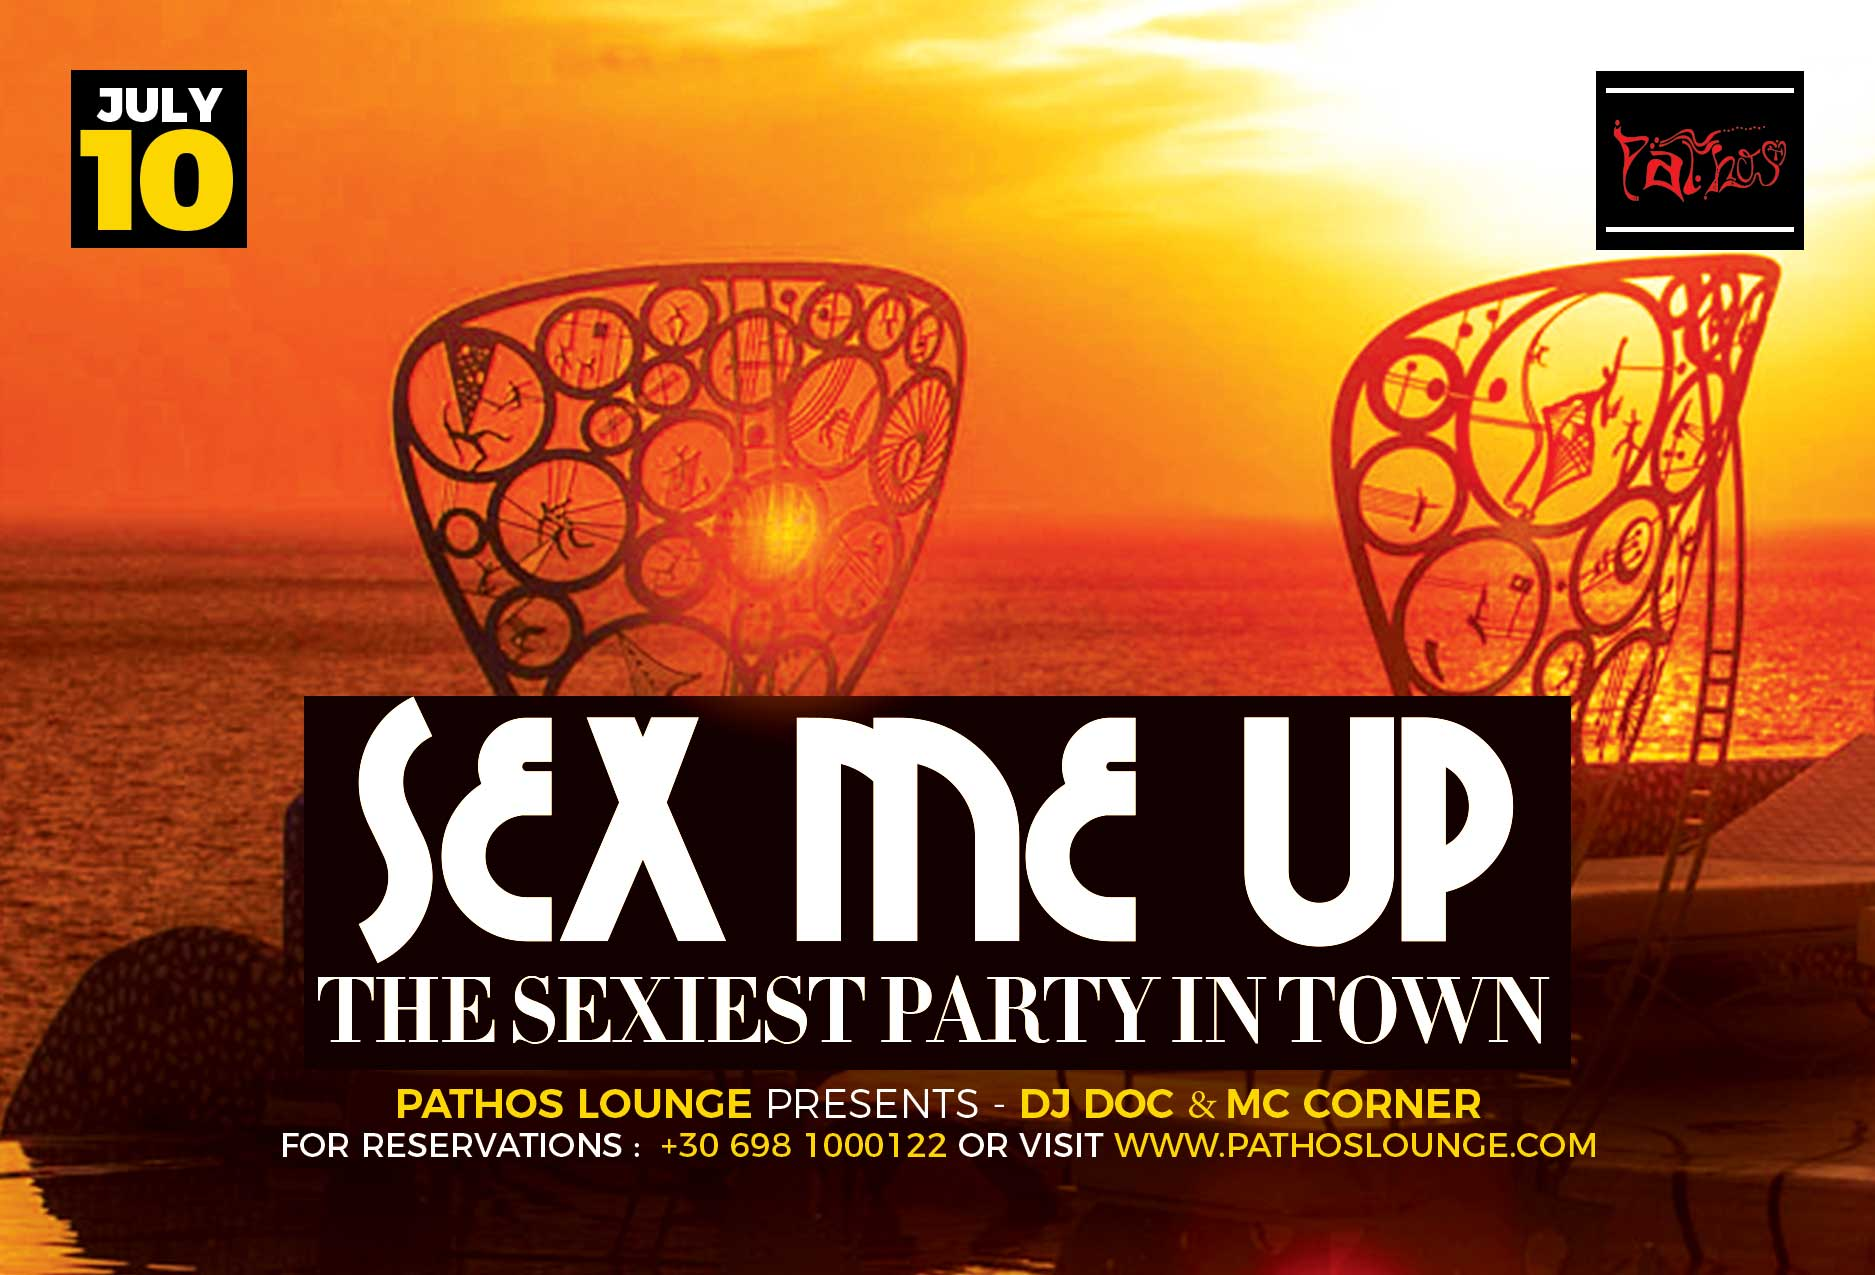 Sex me Up Party - The sexiest party in town 2017!